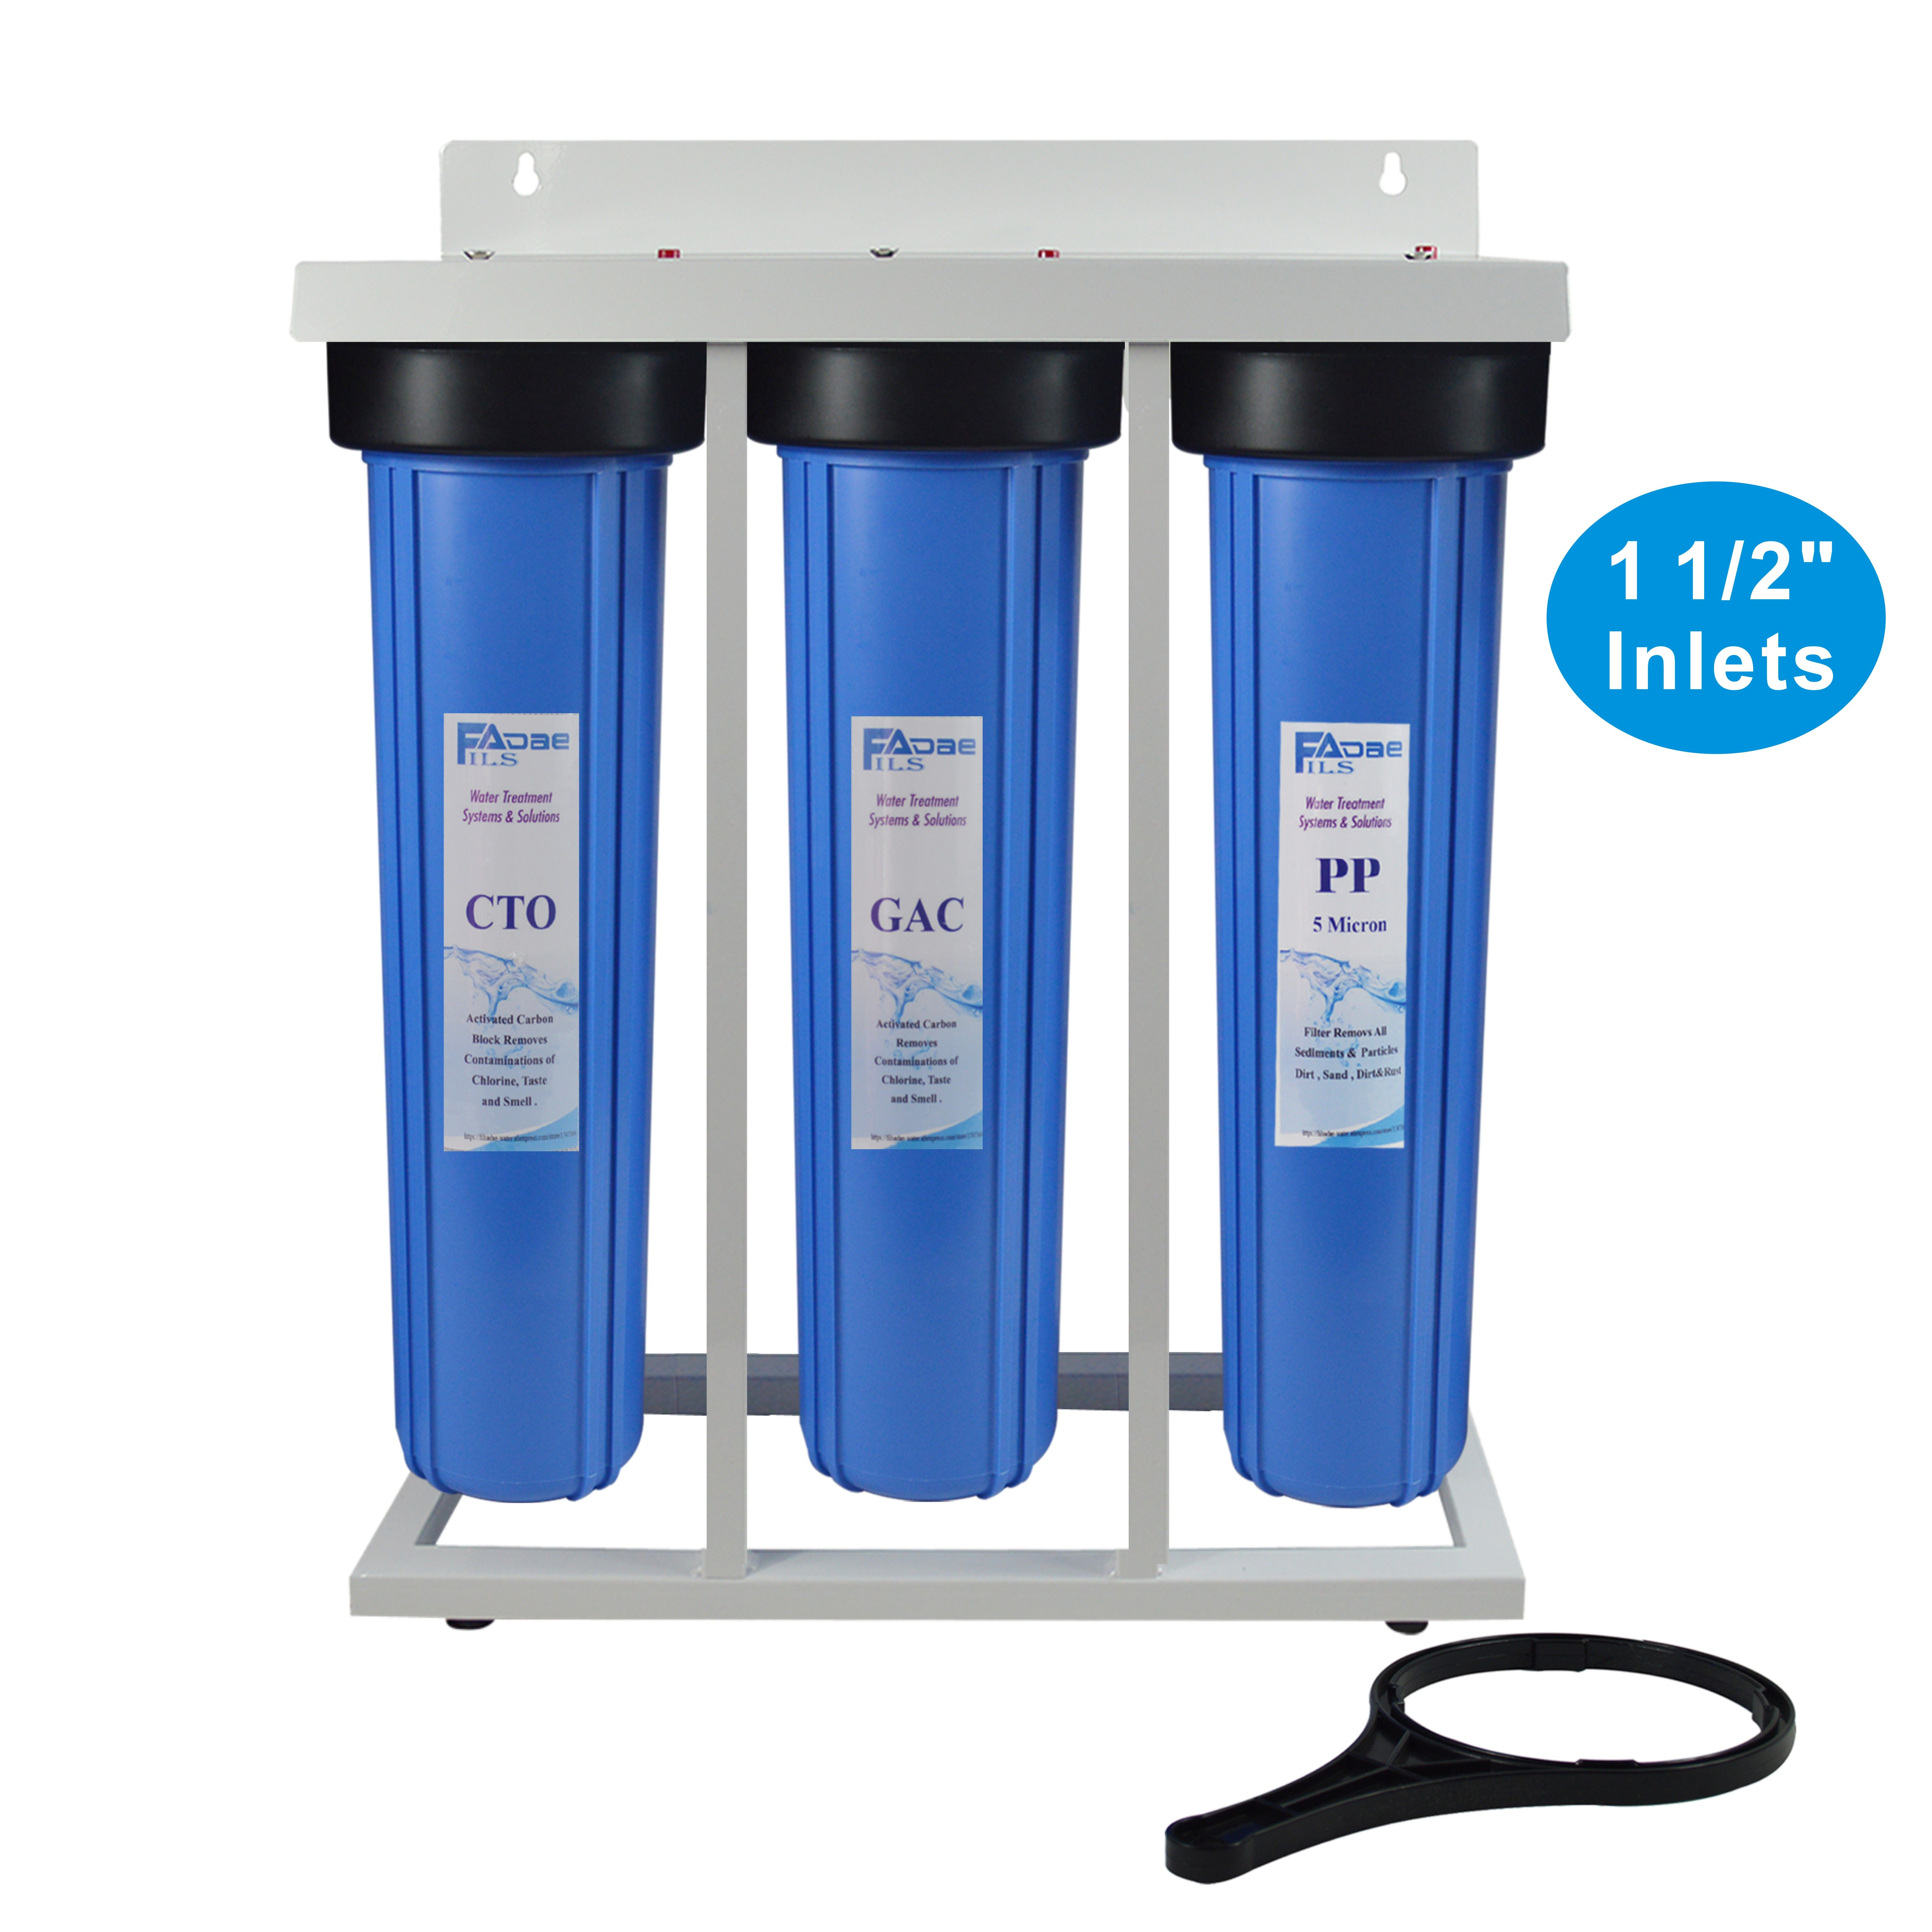 3 Stage Whole House Water Filtration System 1 1 2 Inch Inlets With Stand 20 Big B Whole House Water Filter Whole House Reverse Osmosis Water Filtration System